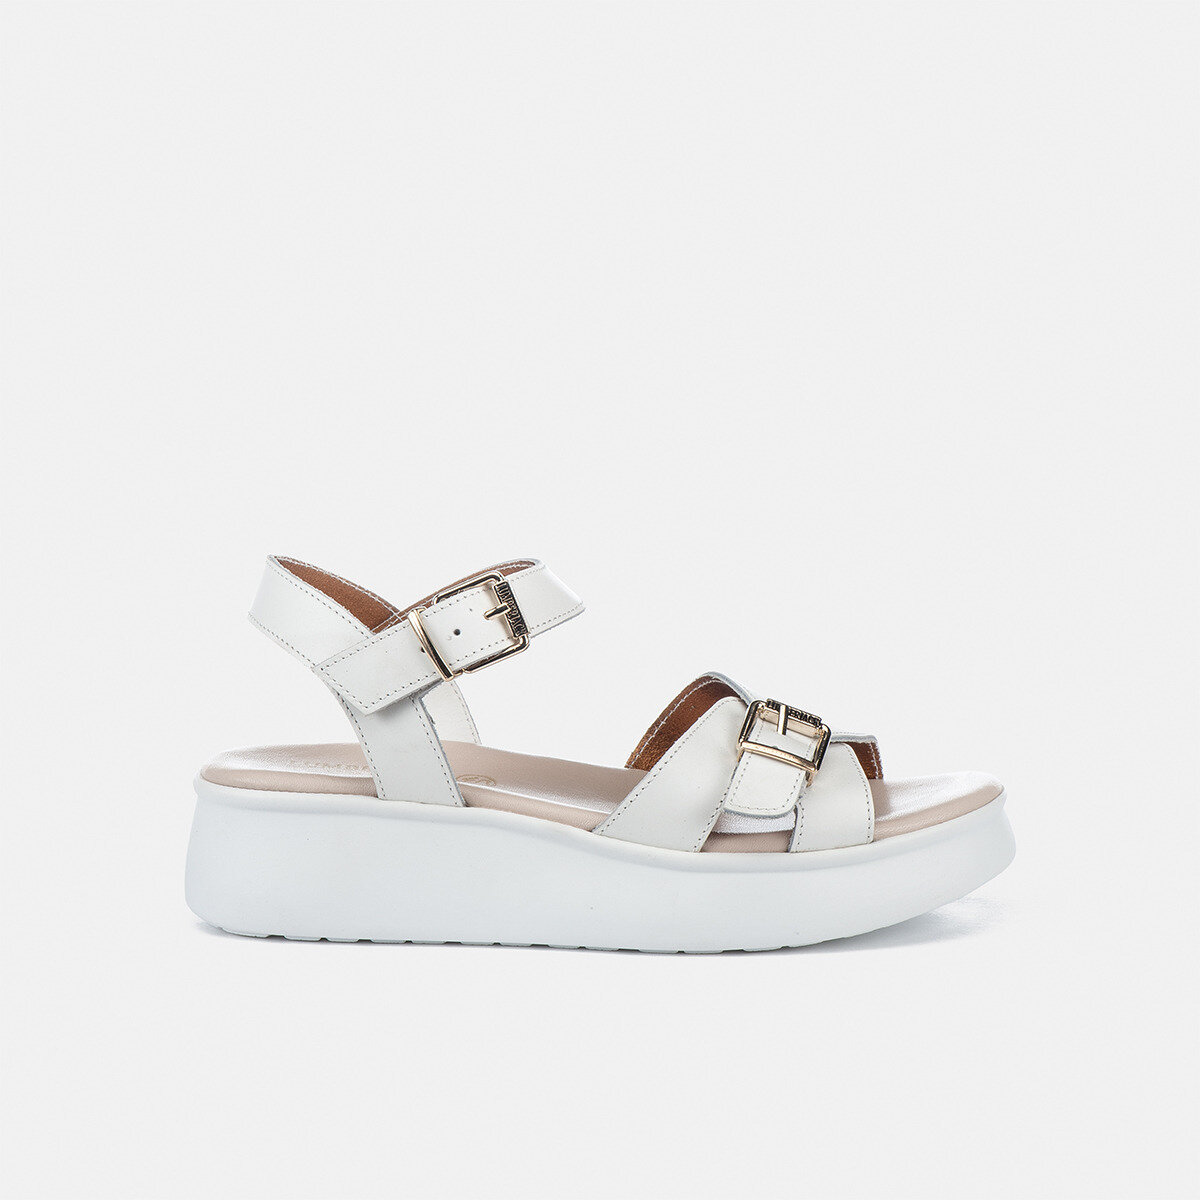 WENDY WHITE Woman Sandals